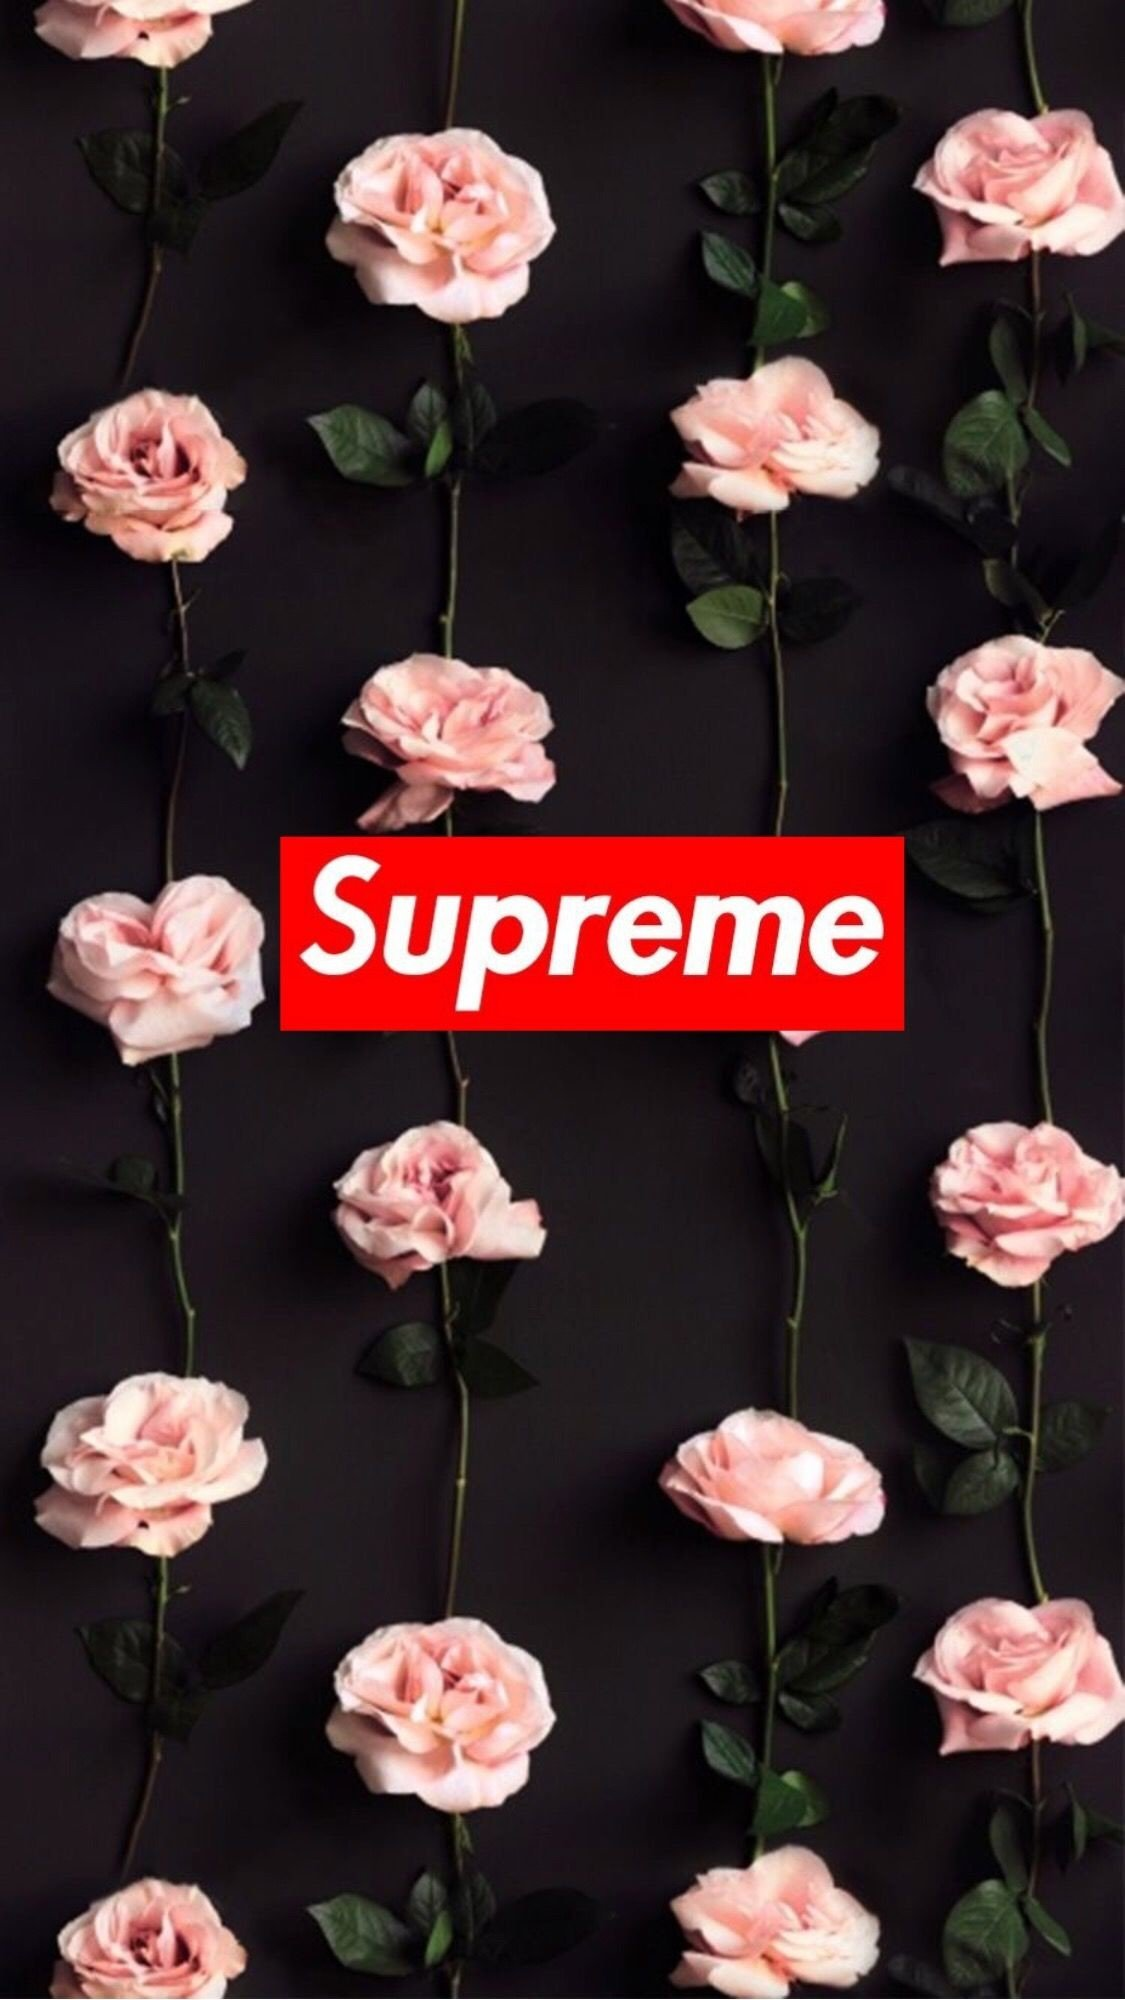 Supreme Wallpapers Download Supreme Hd Wallpapers   Iphone 8 1125x2000